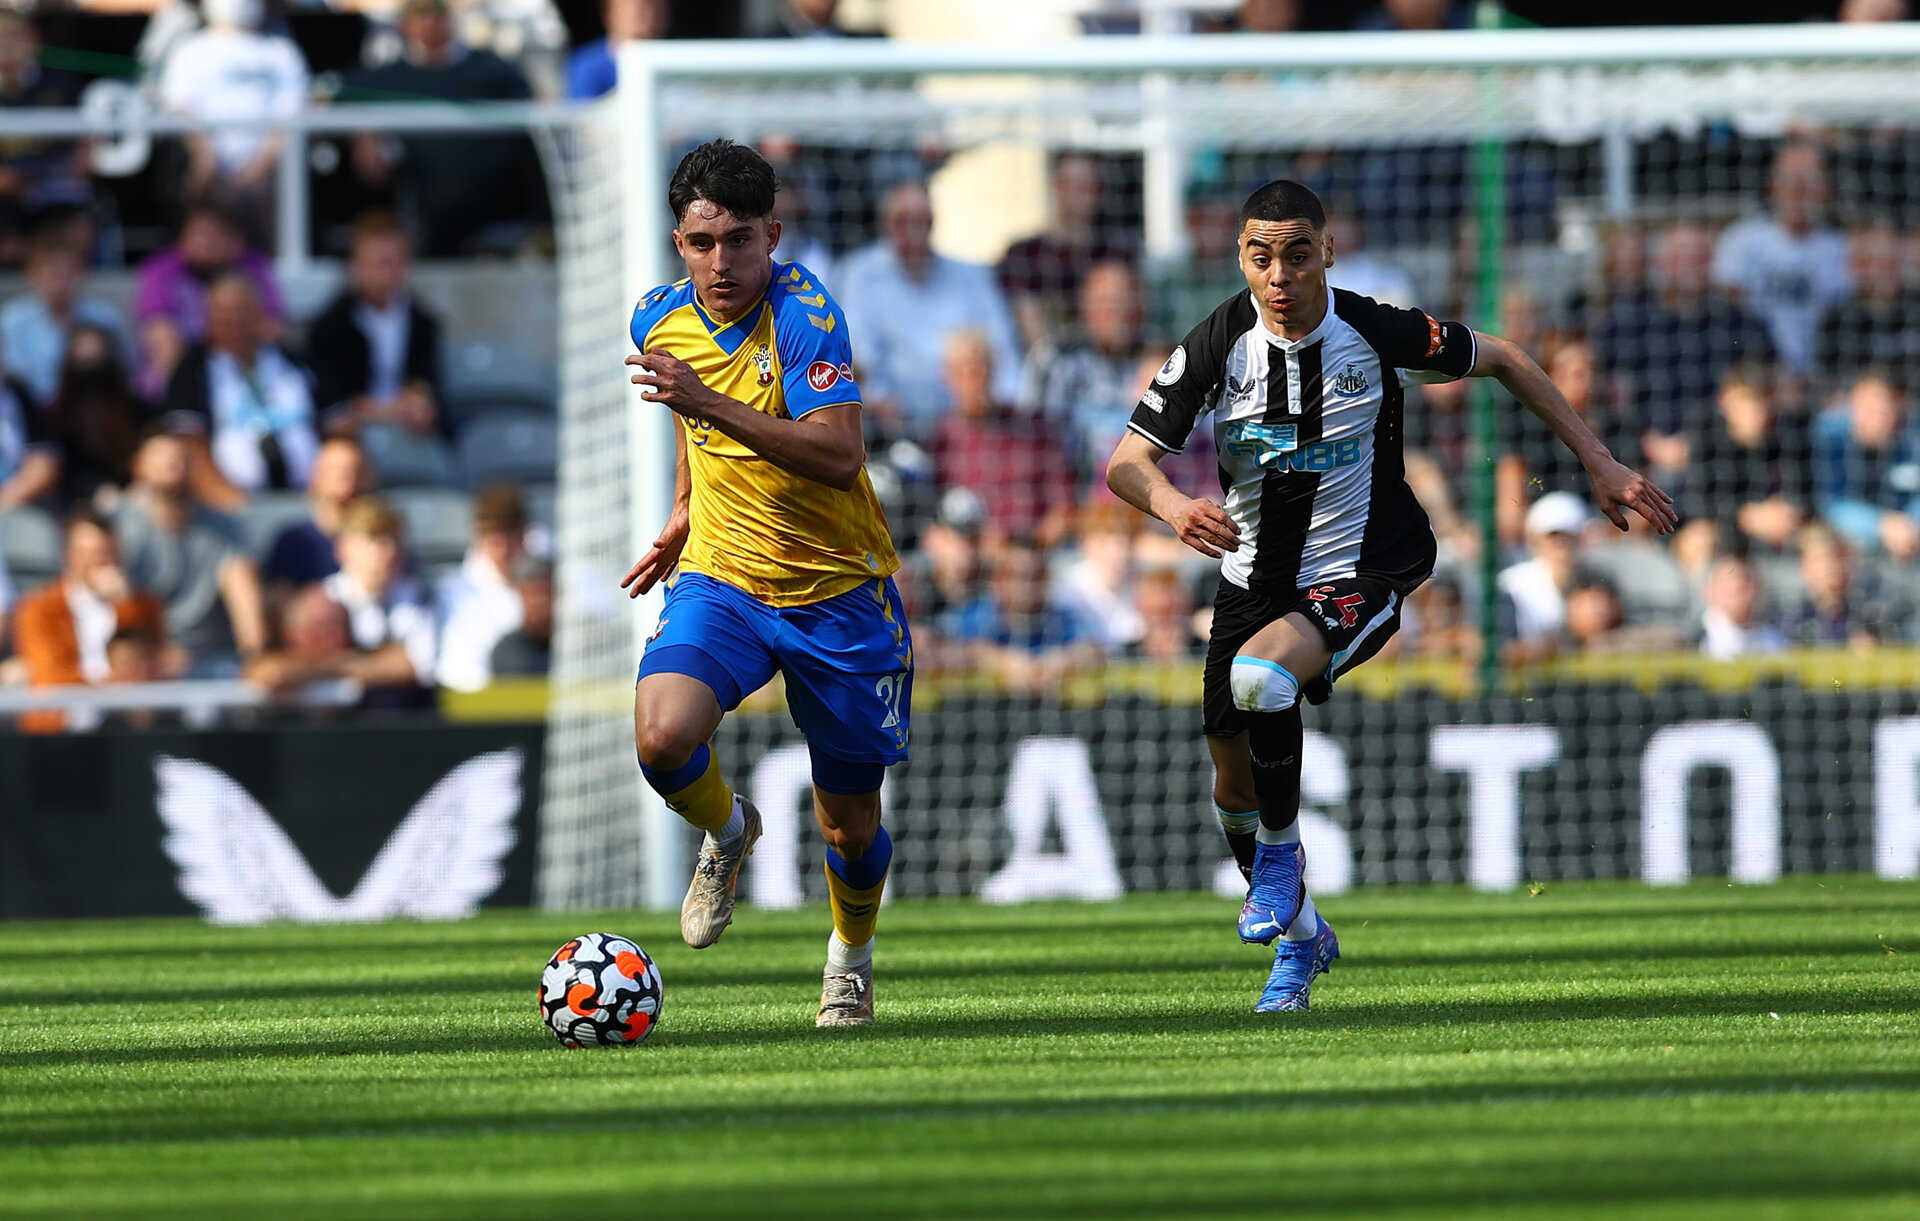 NEWCASTLE UPON TYNE, ENGLAND - AUGUST 28: Tino Livramento(L) of Southampton and Miguel Almiron of Newcastle during the Premier League match between Newcastle United  and  Southampton at St. James Park on August 28, 2021 in Newcastle upon Tyne, England. (Photo by Matt Watson/Southampton FC via Getty Images)